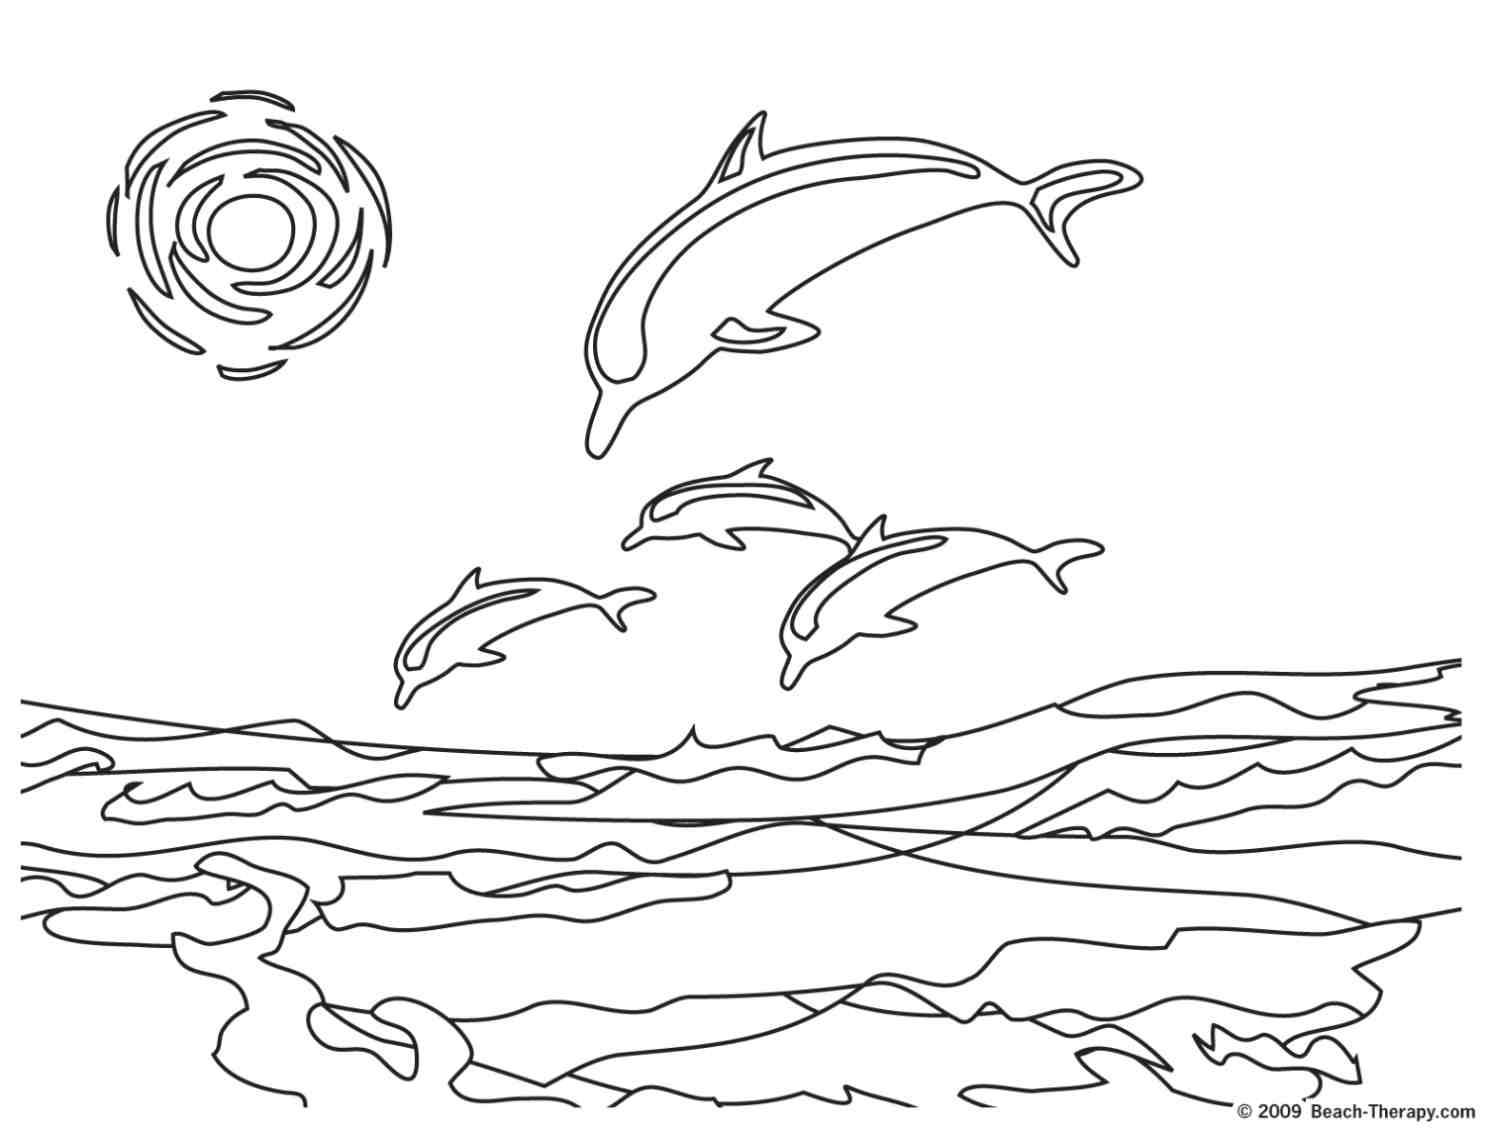 dolfin coloring pages - photo#33